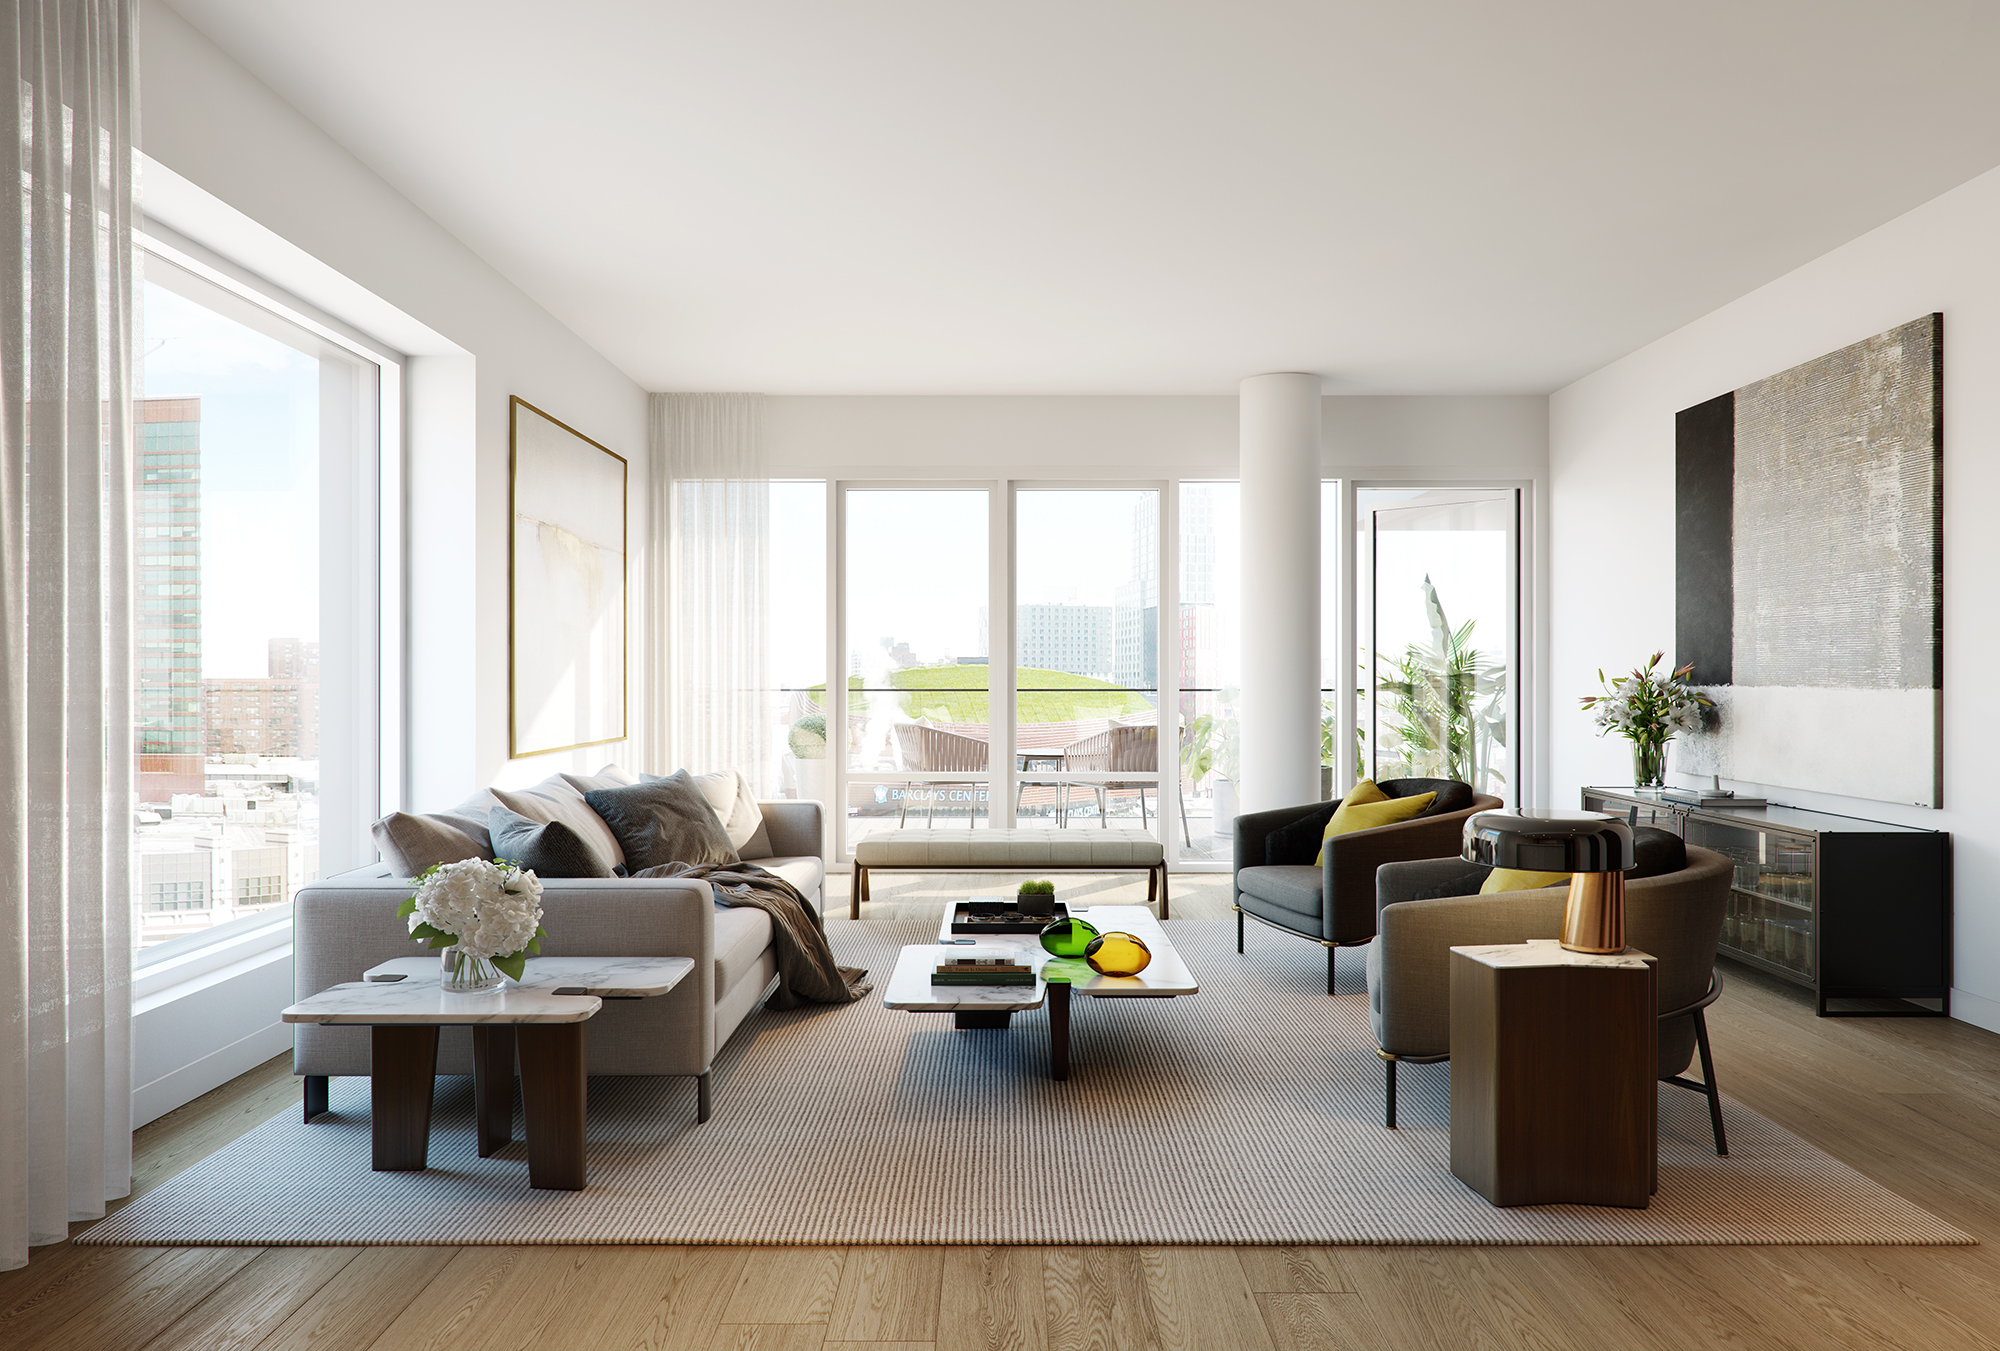 In Boerum Hill, condo inspired by Japanese design launches sales